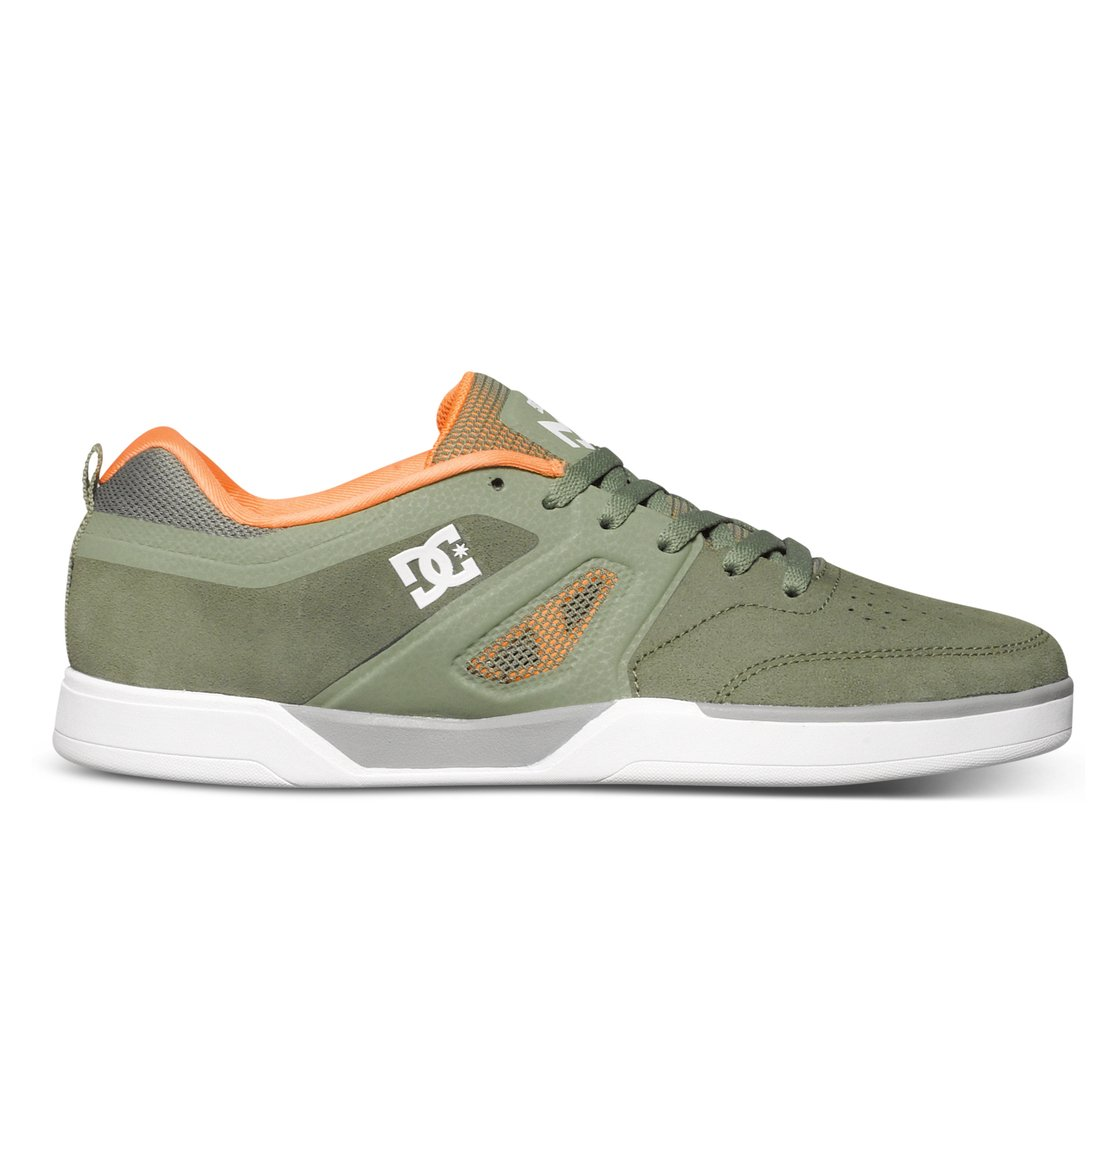 Matt Miller S - Dcshoes������ ���� Matt Miller S �� DC Shoes � ������� �� ��������� ����� 2015�. ��������������: ���� �� ����� Super Suede, ������� ��������� �����������, ������� ���� � ������� �� �����.<br>